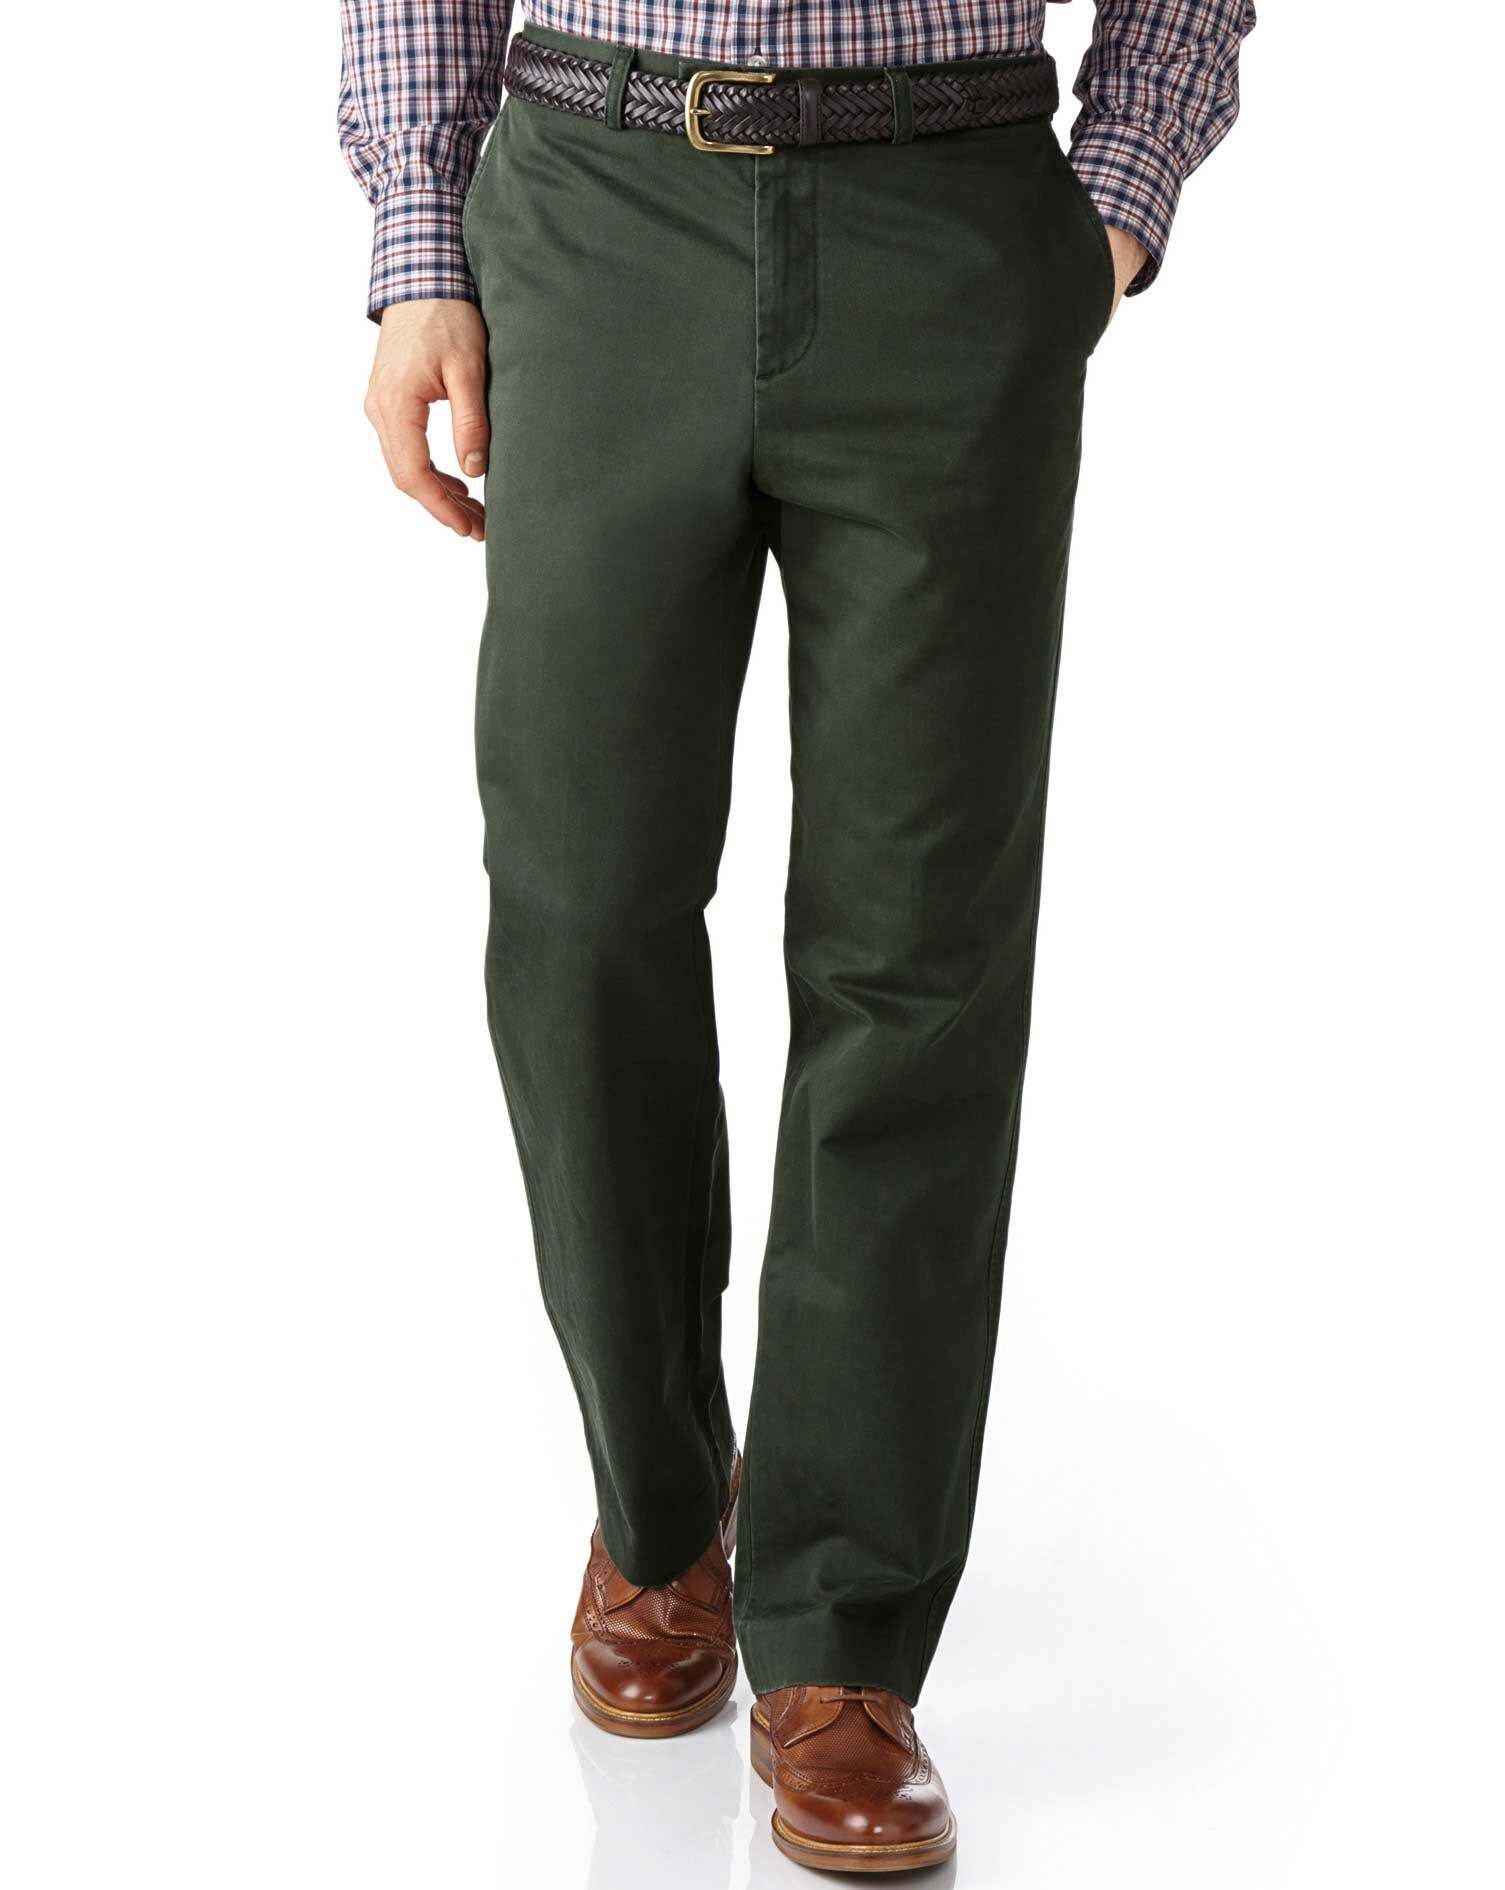 Dark Green Classic Fit Flat Front Weekend Cotton Chino Trousers Size W32 L30 by Charles Tyrwhitt